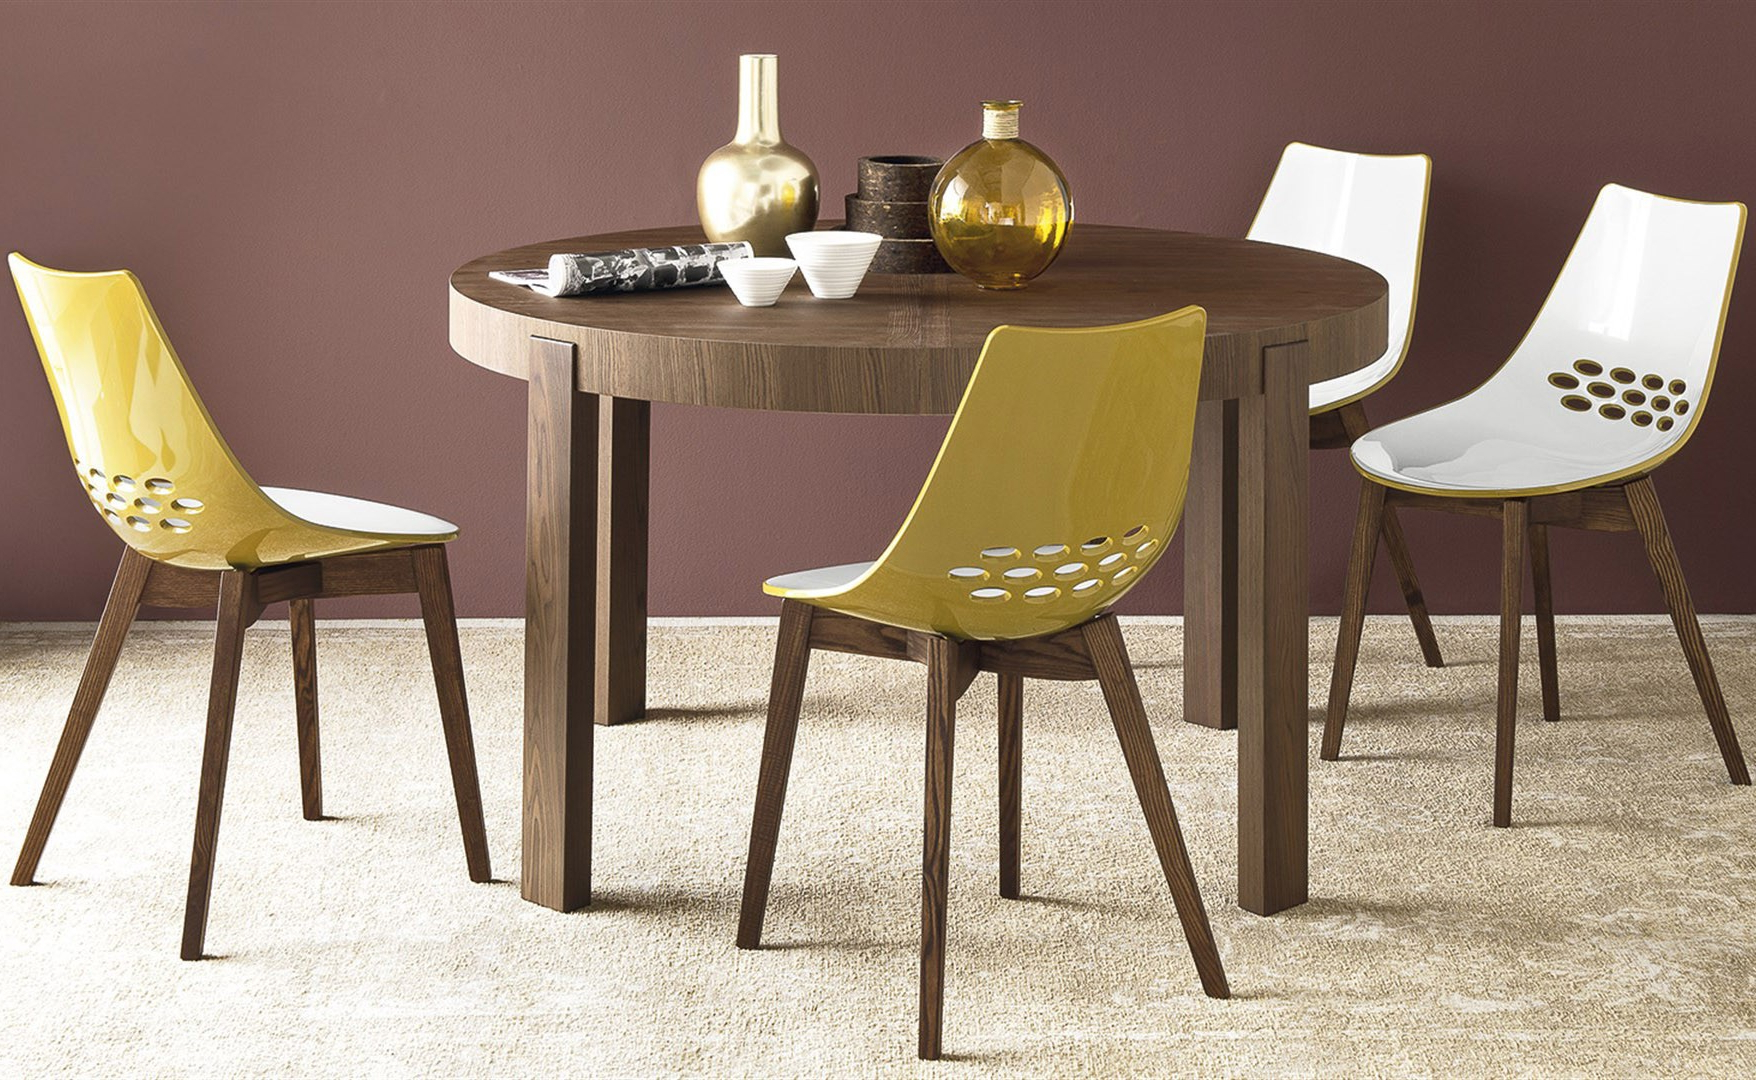 Neo Round Dining Tables For Fashionable Calligaris Cs/398 Rd Atelier Round Dining Table, Italy – Neo (Gallery 9 of 30)